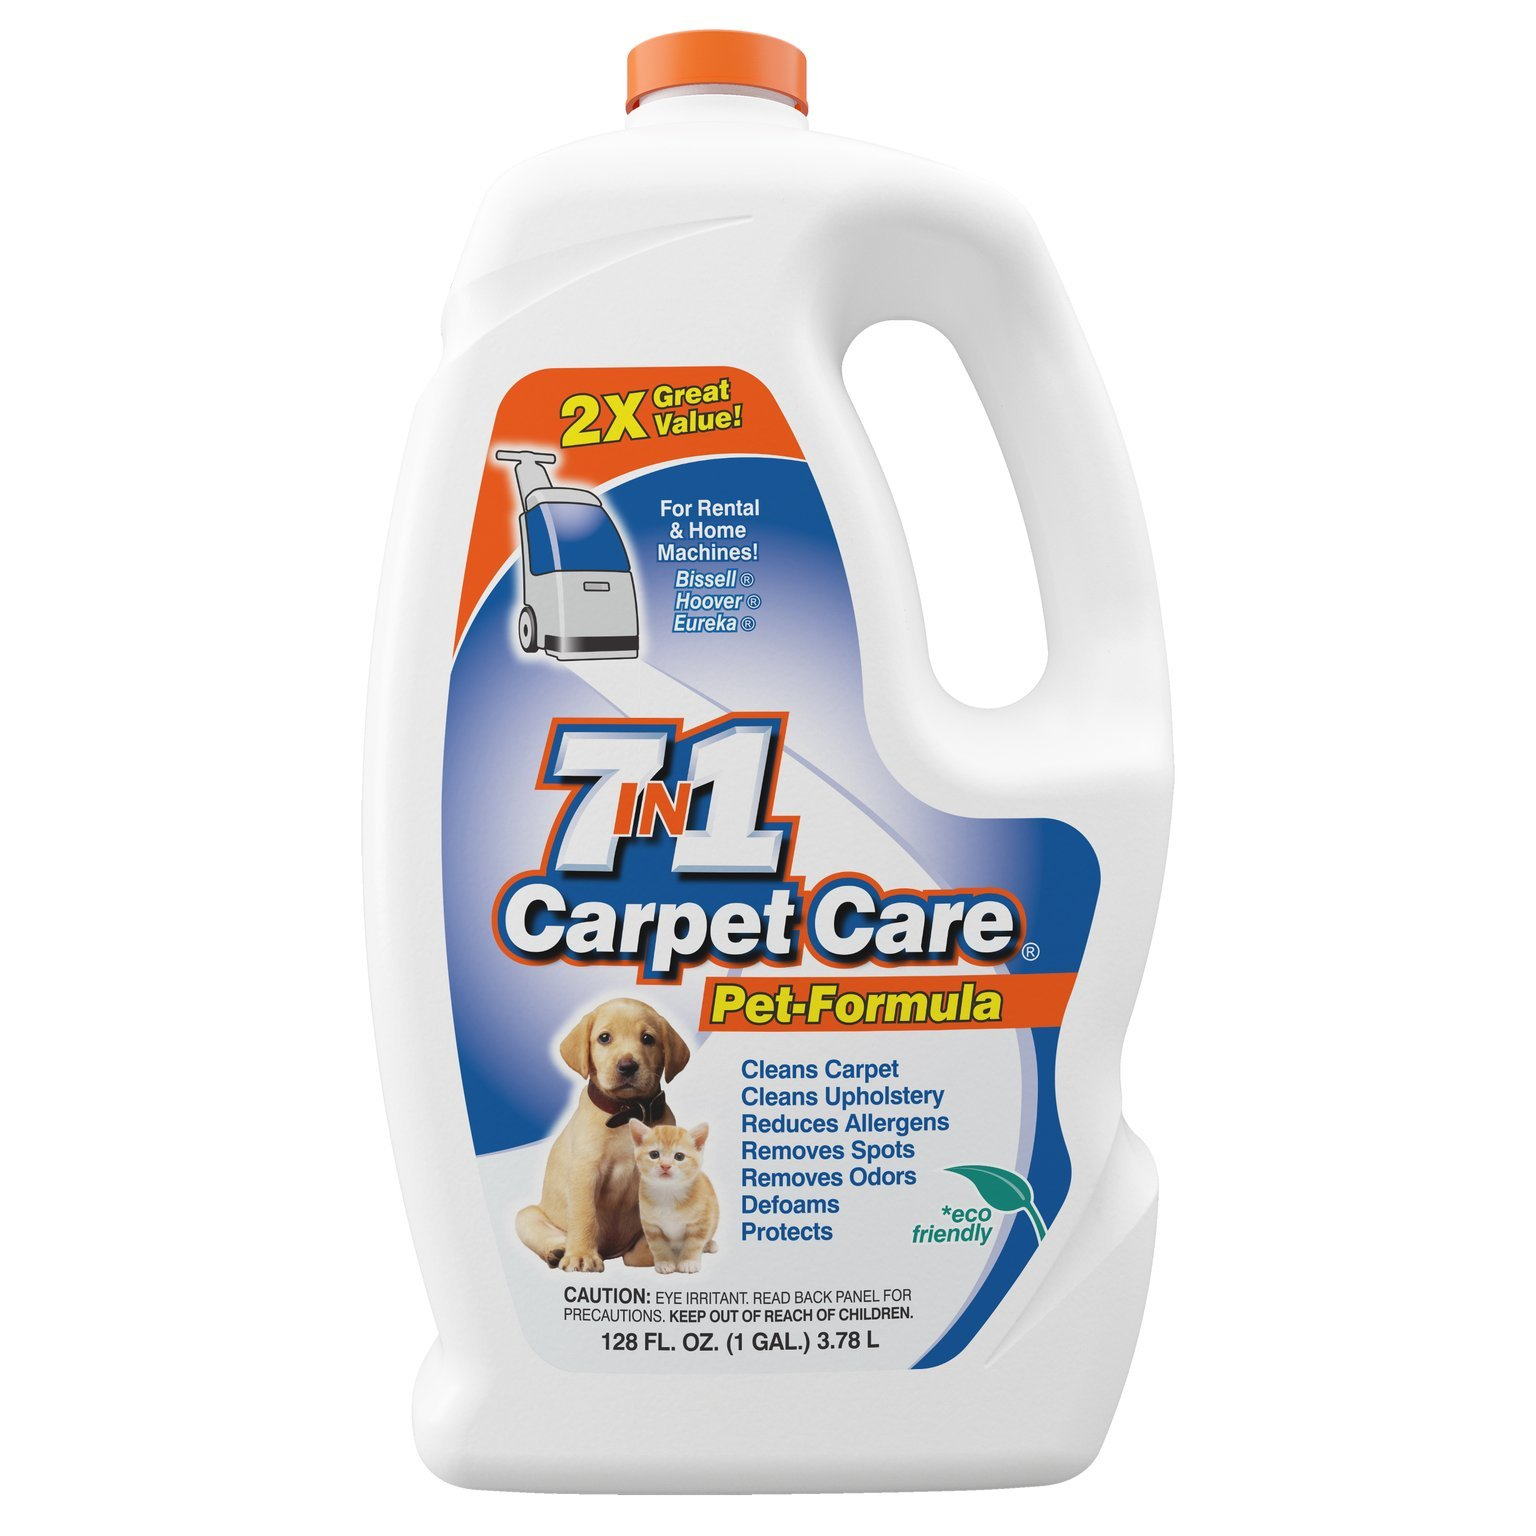 7in1 Carpet Care Pet Formula Carpet Cleaning Solution (1 Pack)